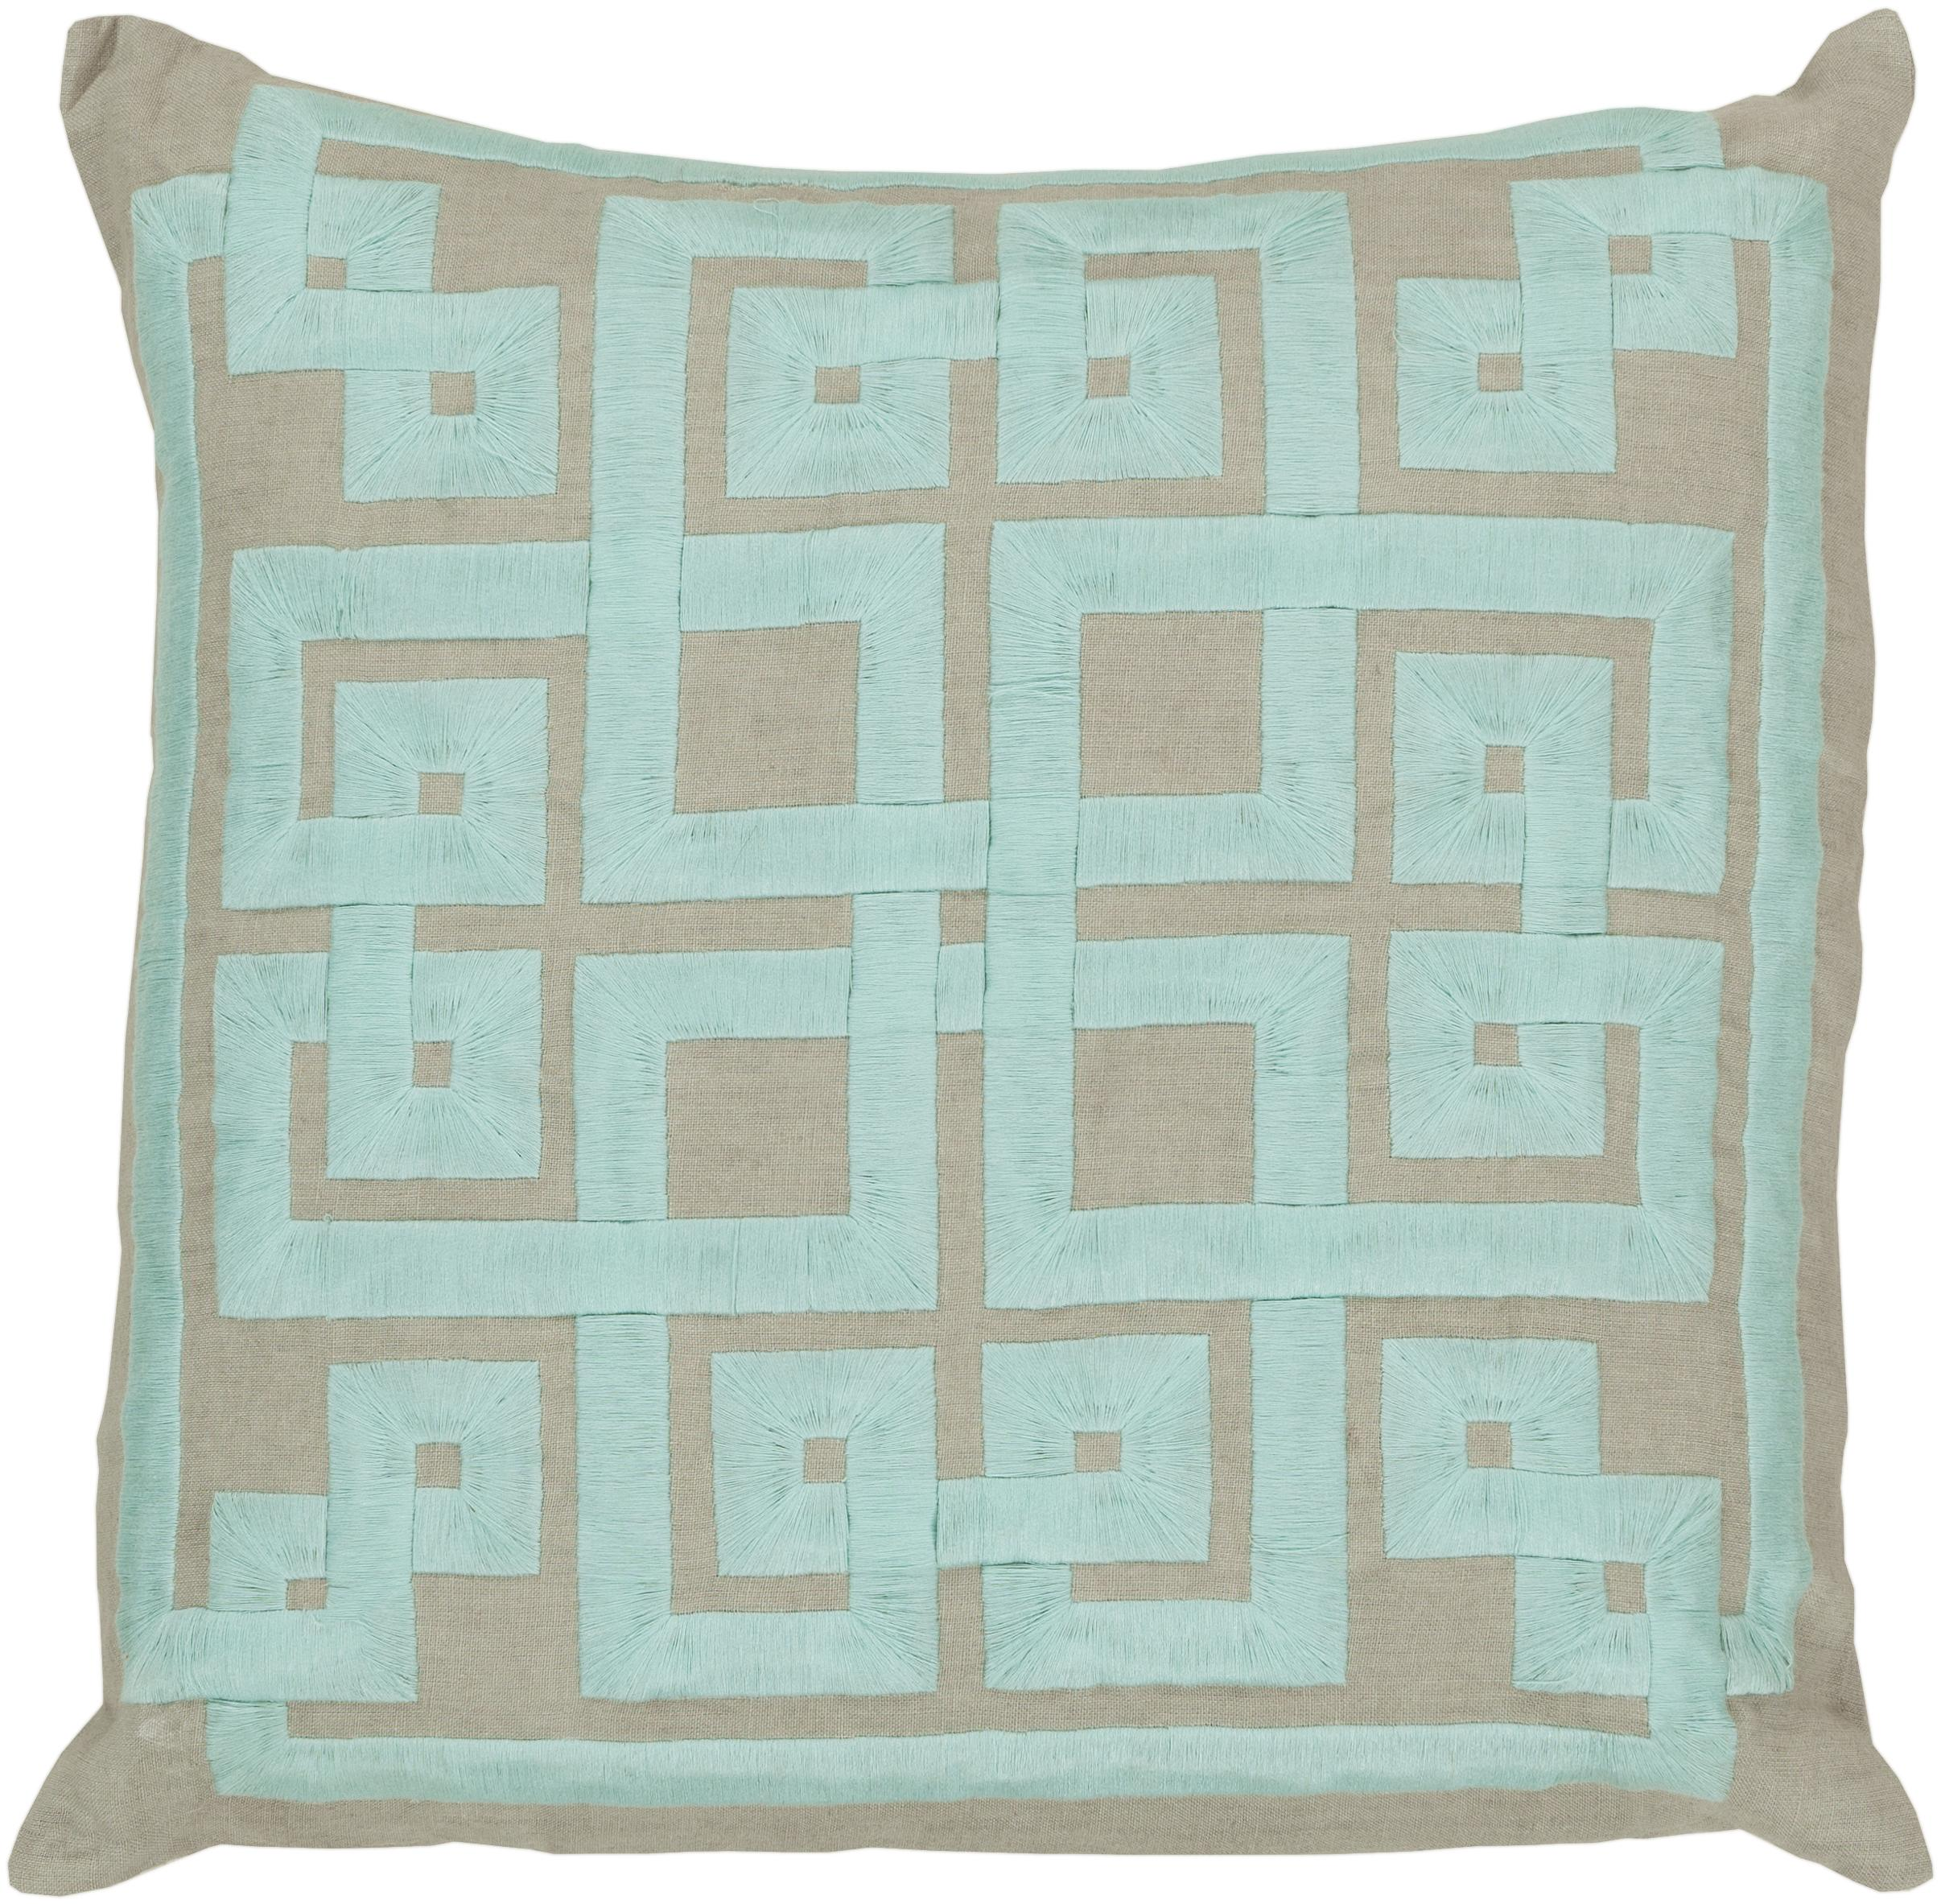 "Surya Pillows 18"" x 18"" Pillow - Item Number: LD010-1818P"